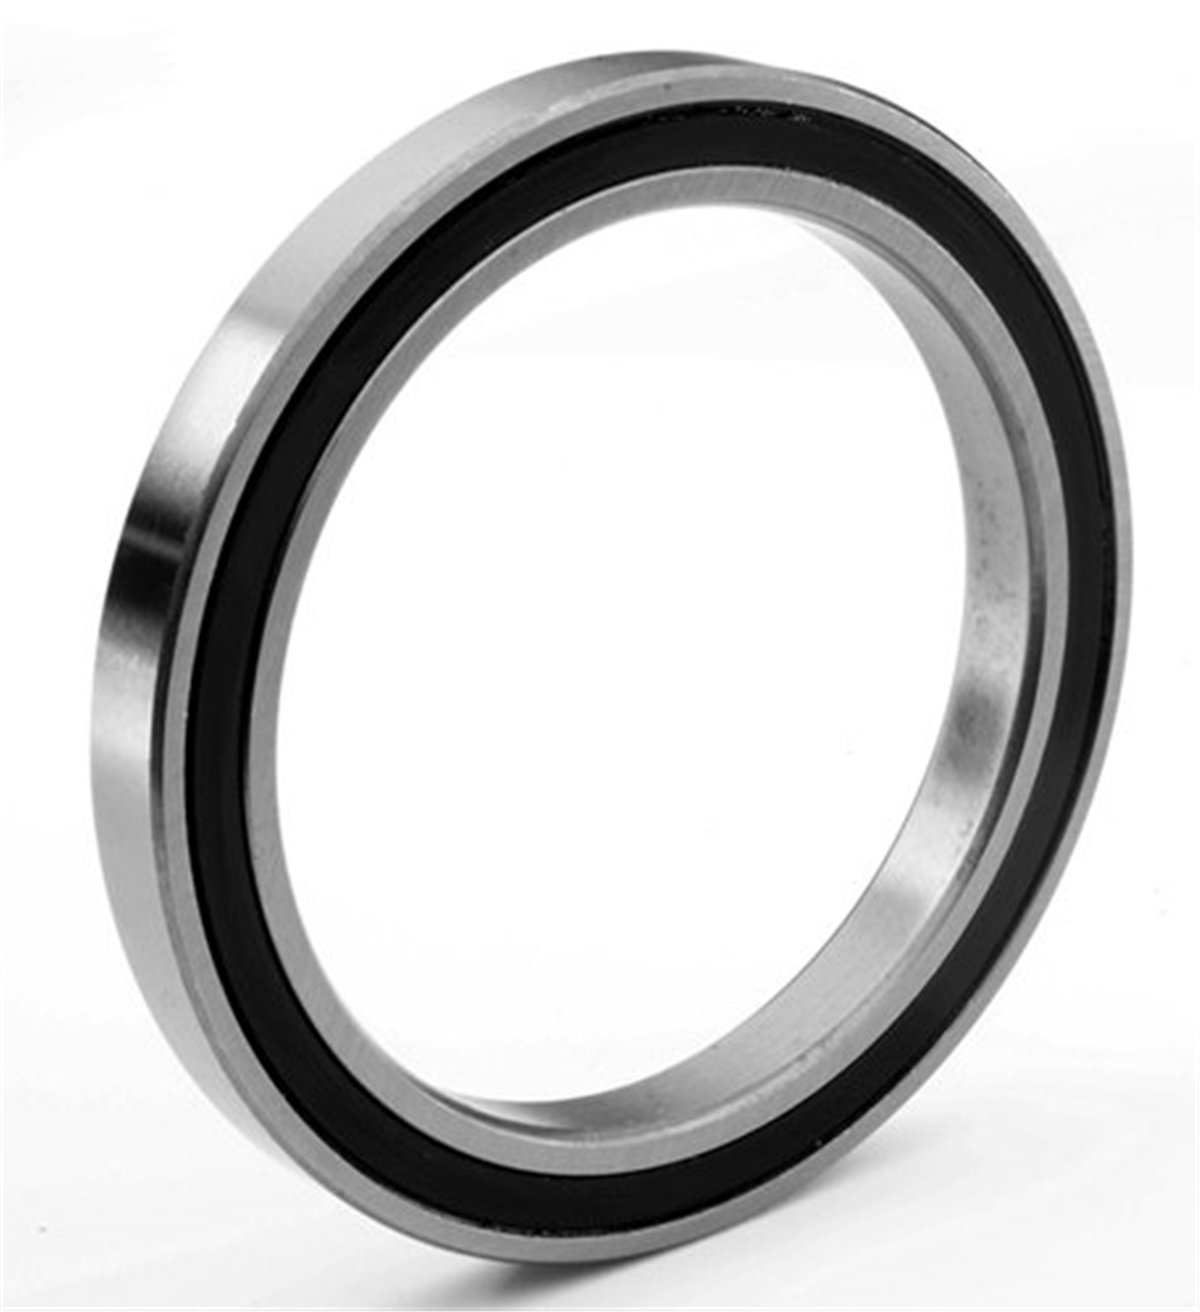 2pc 6706-2RS 30x37x4 mm Hybrid CERAMIC Ball Bearing Bearings 6706RS 30*37*4